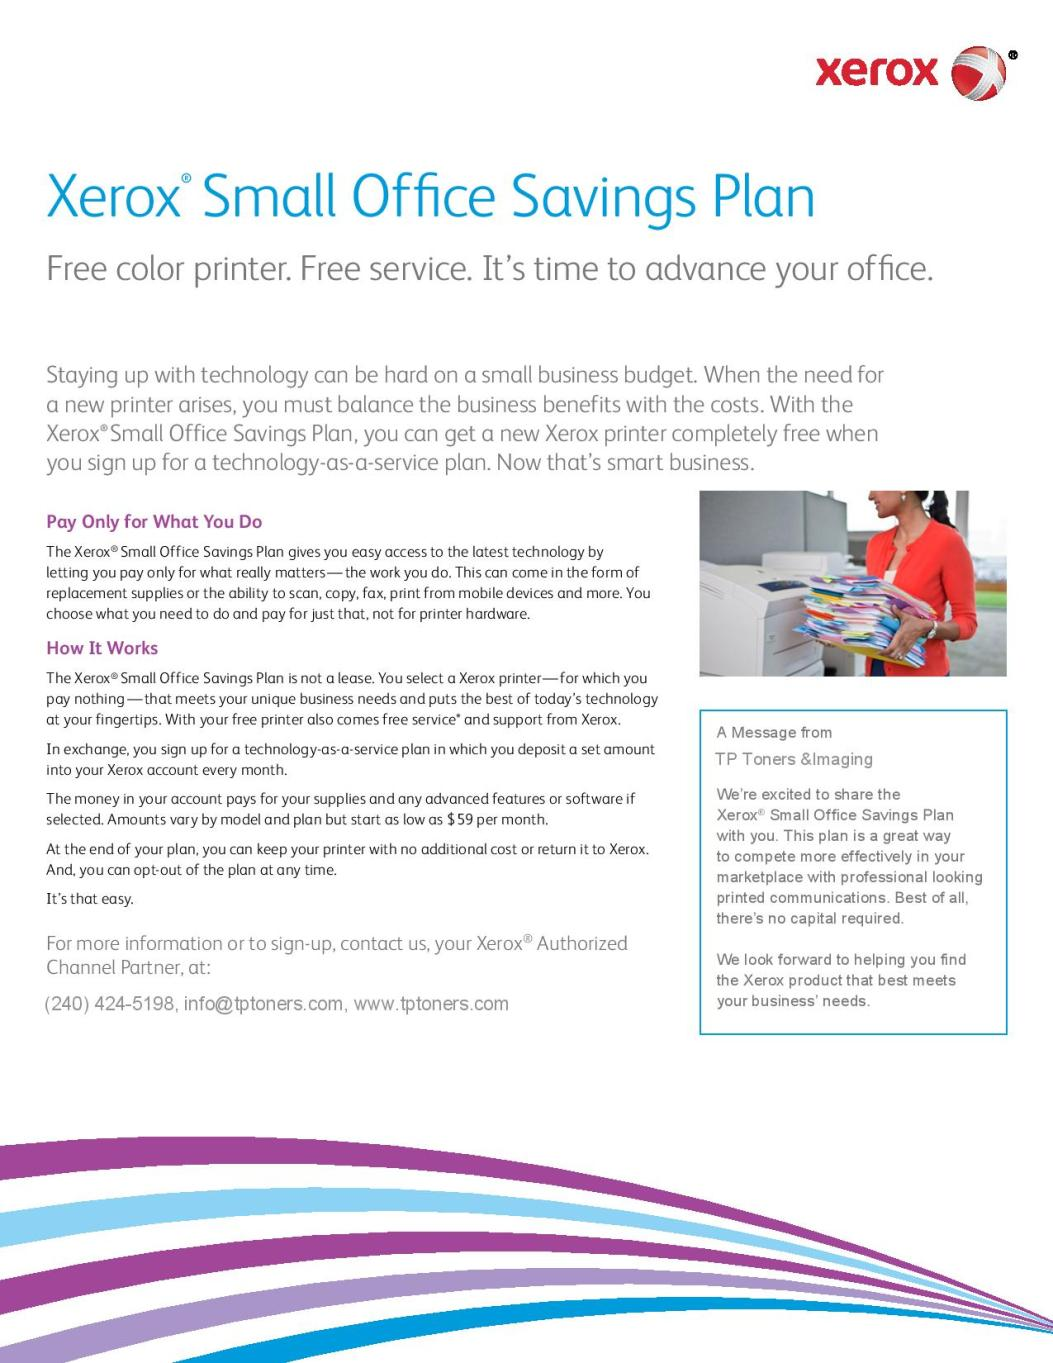 Xerox Small Office Saving Plan XSOSP-03-page-001